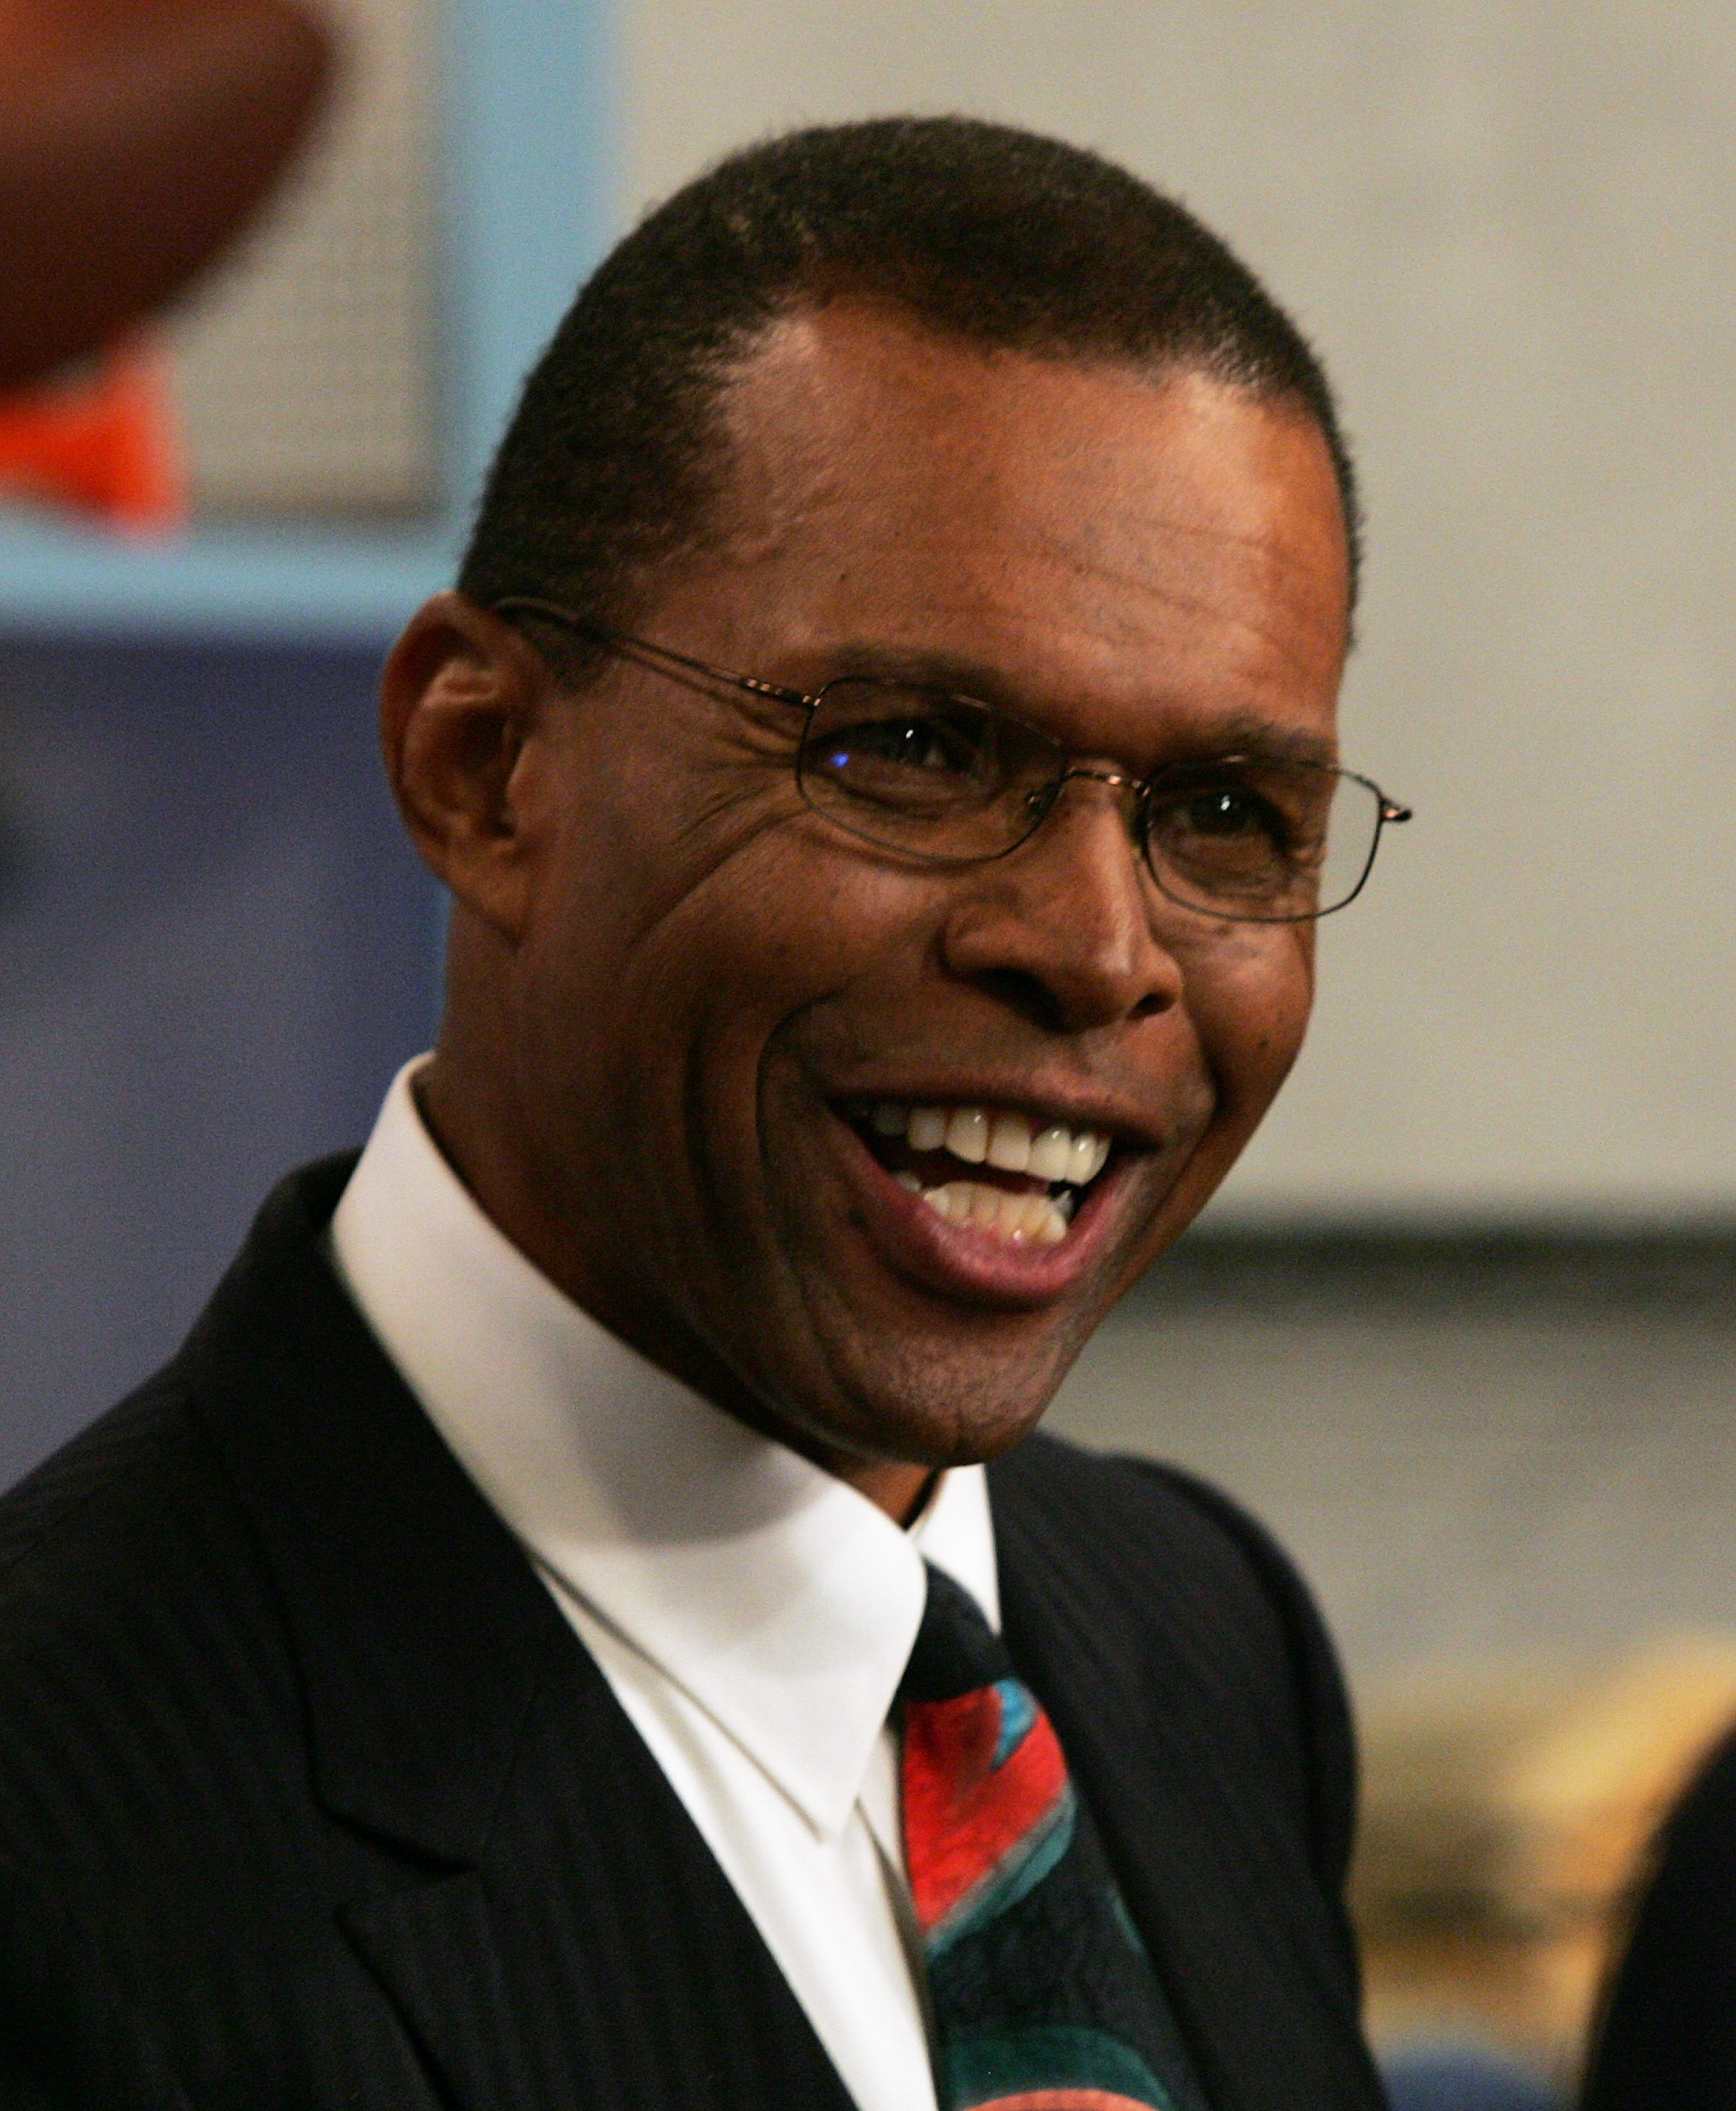 FORT LAUDERDALE, FL - DECEMBER 06:  Former NFL great Gale Sayers shares a laugh during the taping of the NFL Players Week 10th Anniversary on Wheel Of Fortune on December 6, 2005 in Fort Lauderdale, Florida.  (Photo by Doug Benc/Getty Images for PLAYERS I